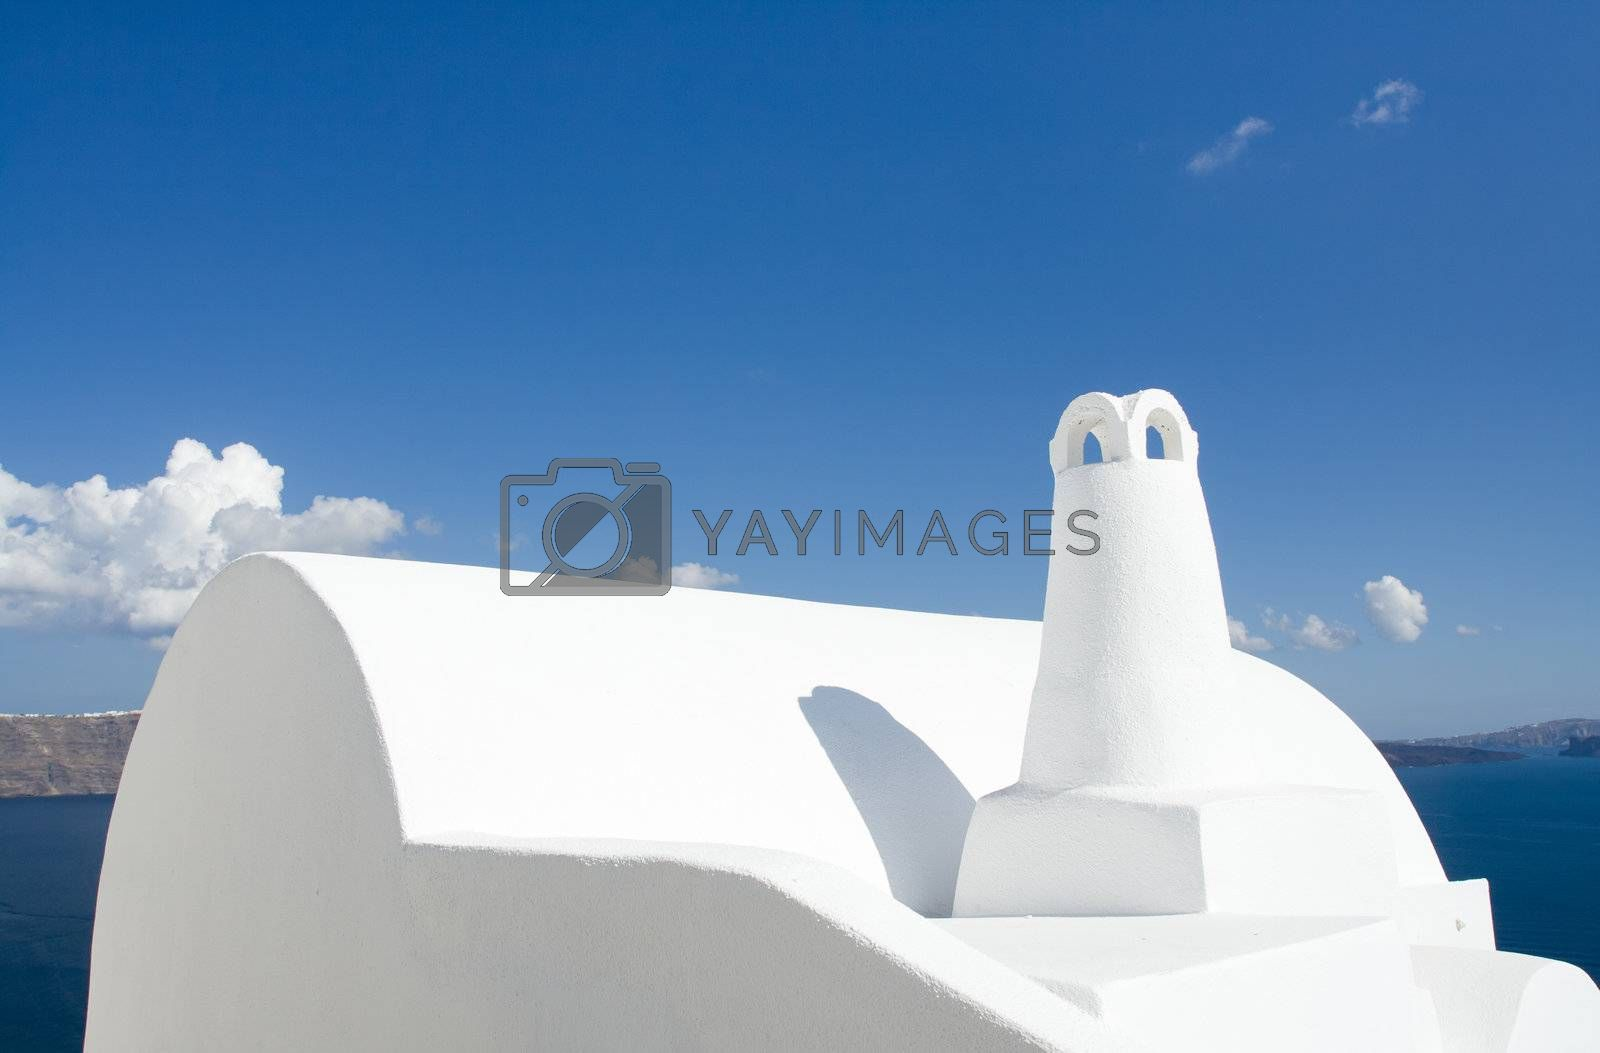 Old-style white traditional Greek roof and chimney in village Oia of Cyclades island Santorini Greece on the blue Aegean Sea and cloudy sky background